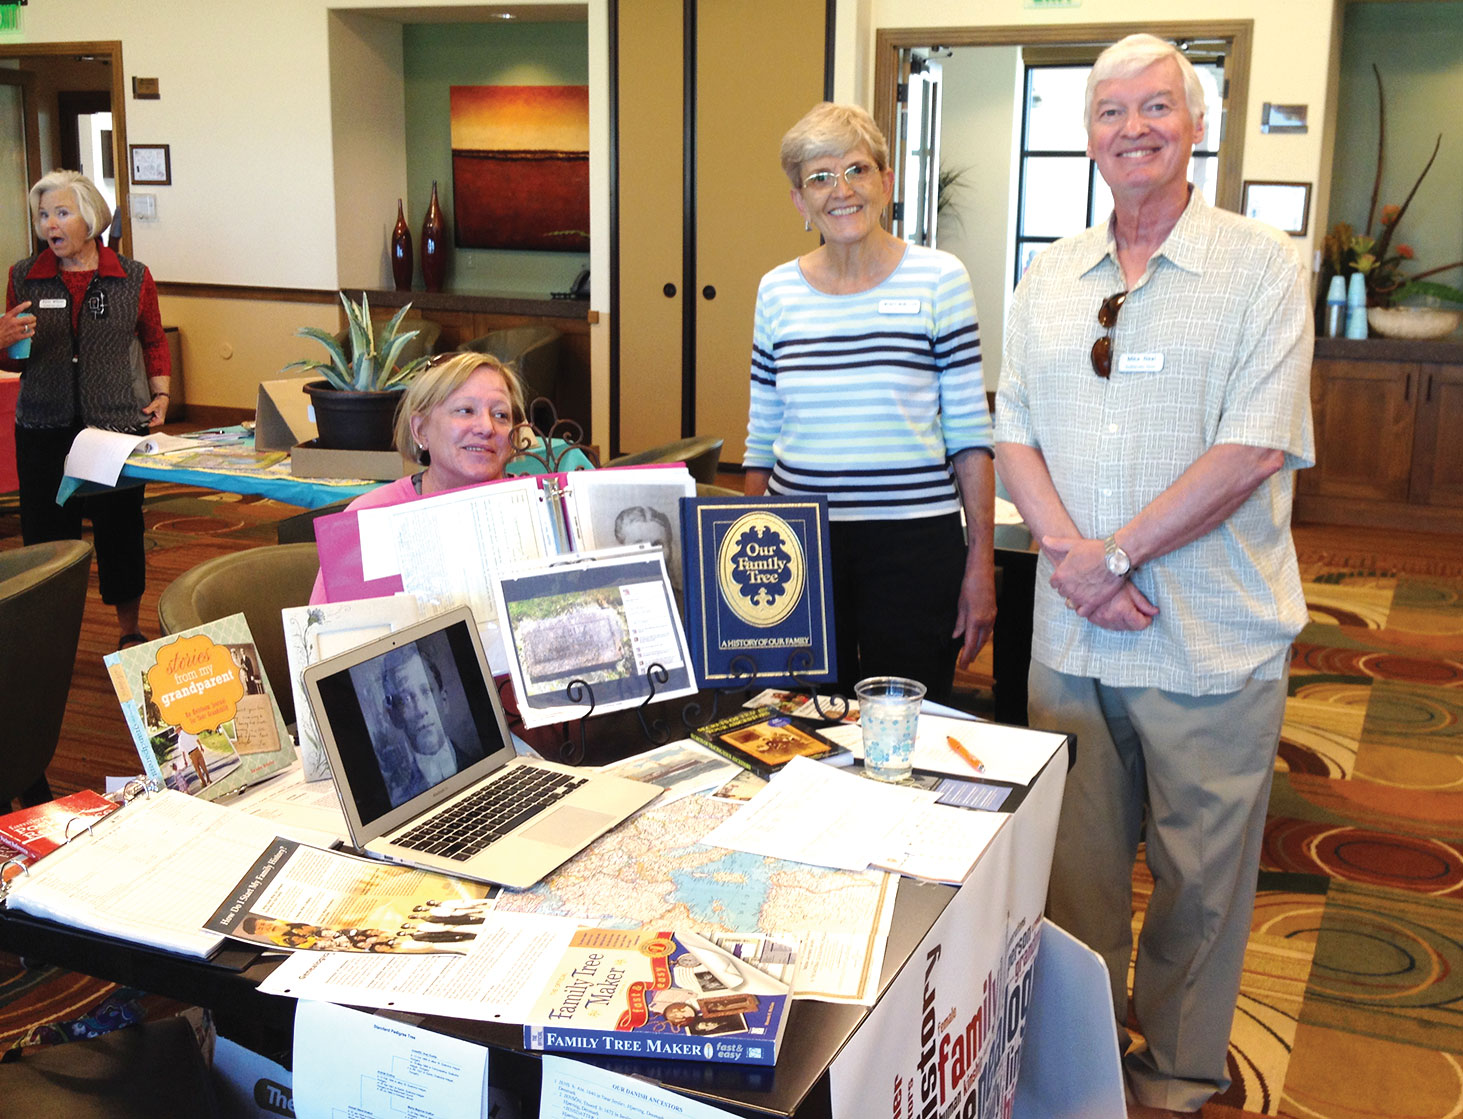 Rebecca Williams, Wendy MacMillian and Mike Neal at the genealogy table